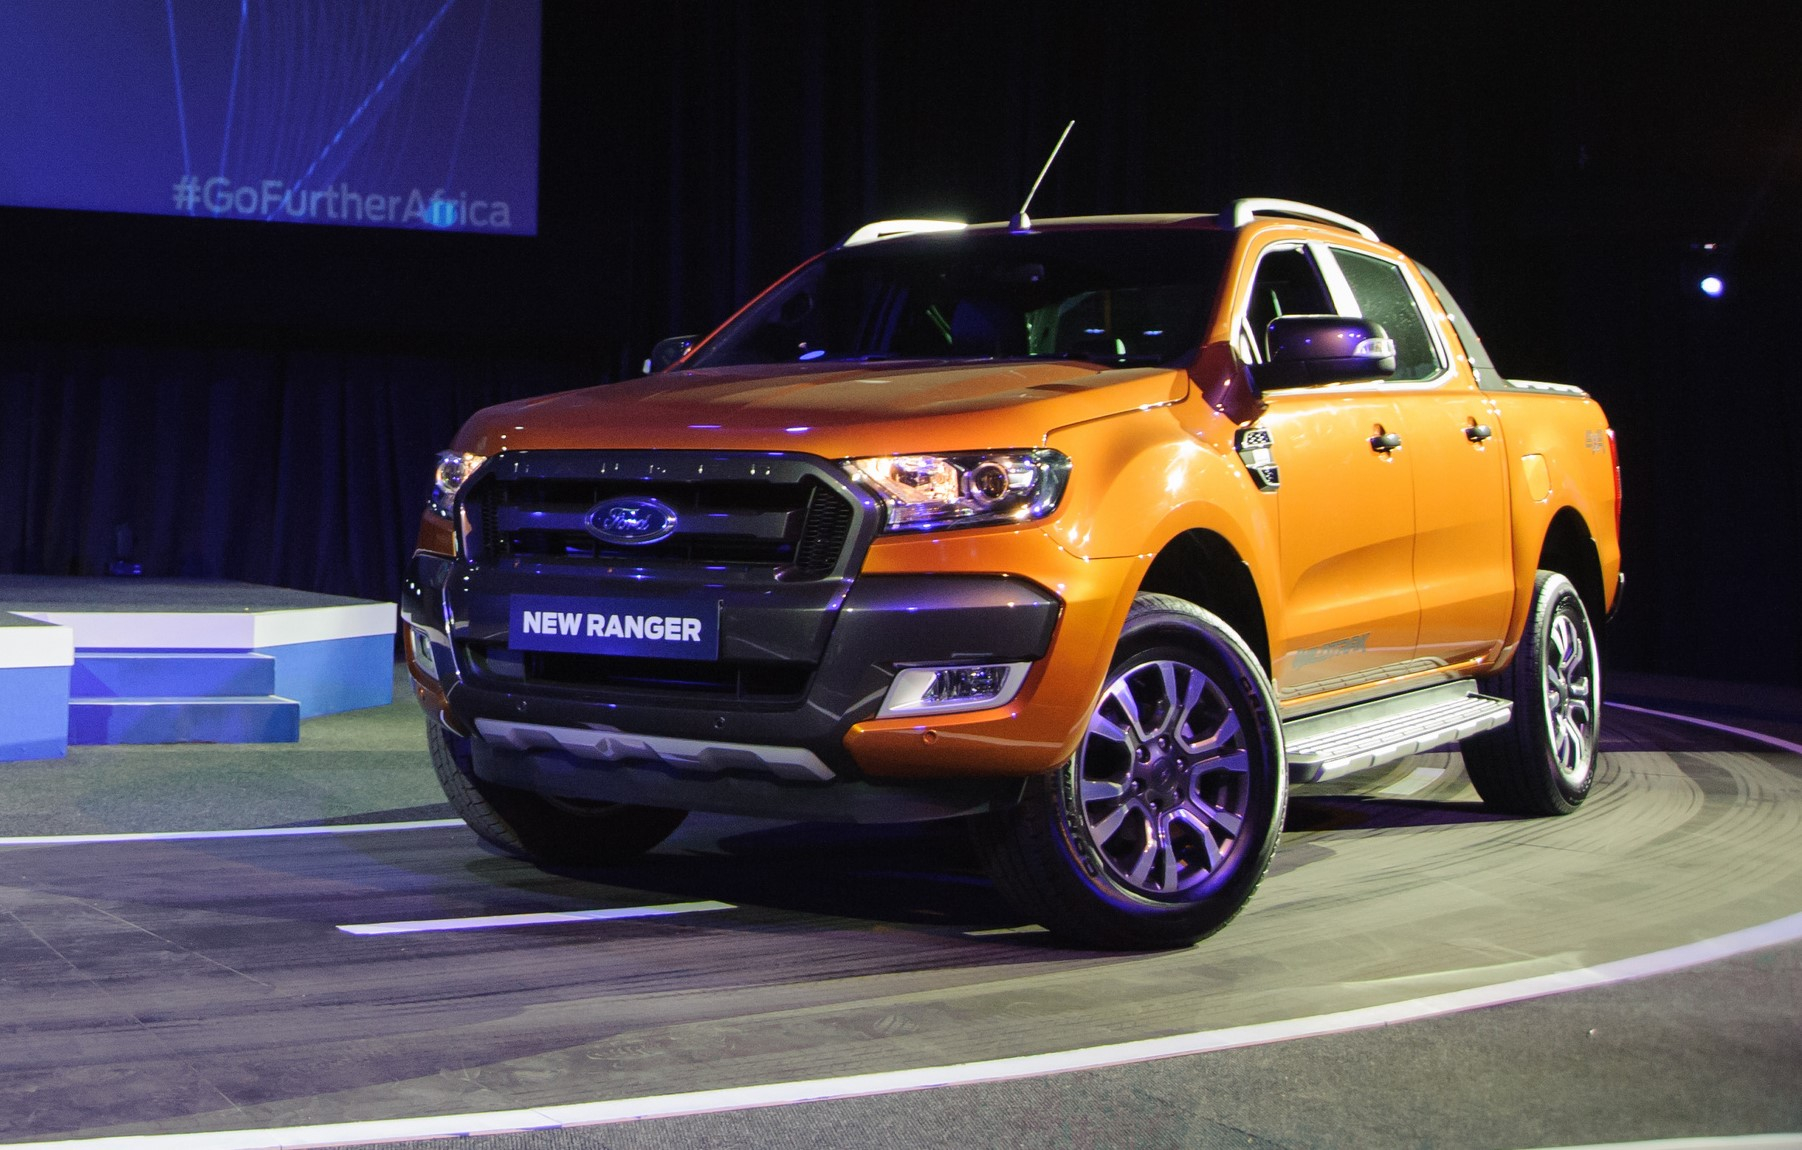 Blue Ford F150 >> Rumor: Ford Will Bring Back Ranger for 2019 Model Year, Maybe With a Diesel Engine - The News Wheel